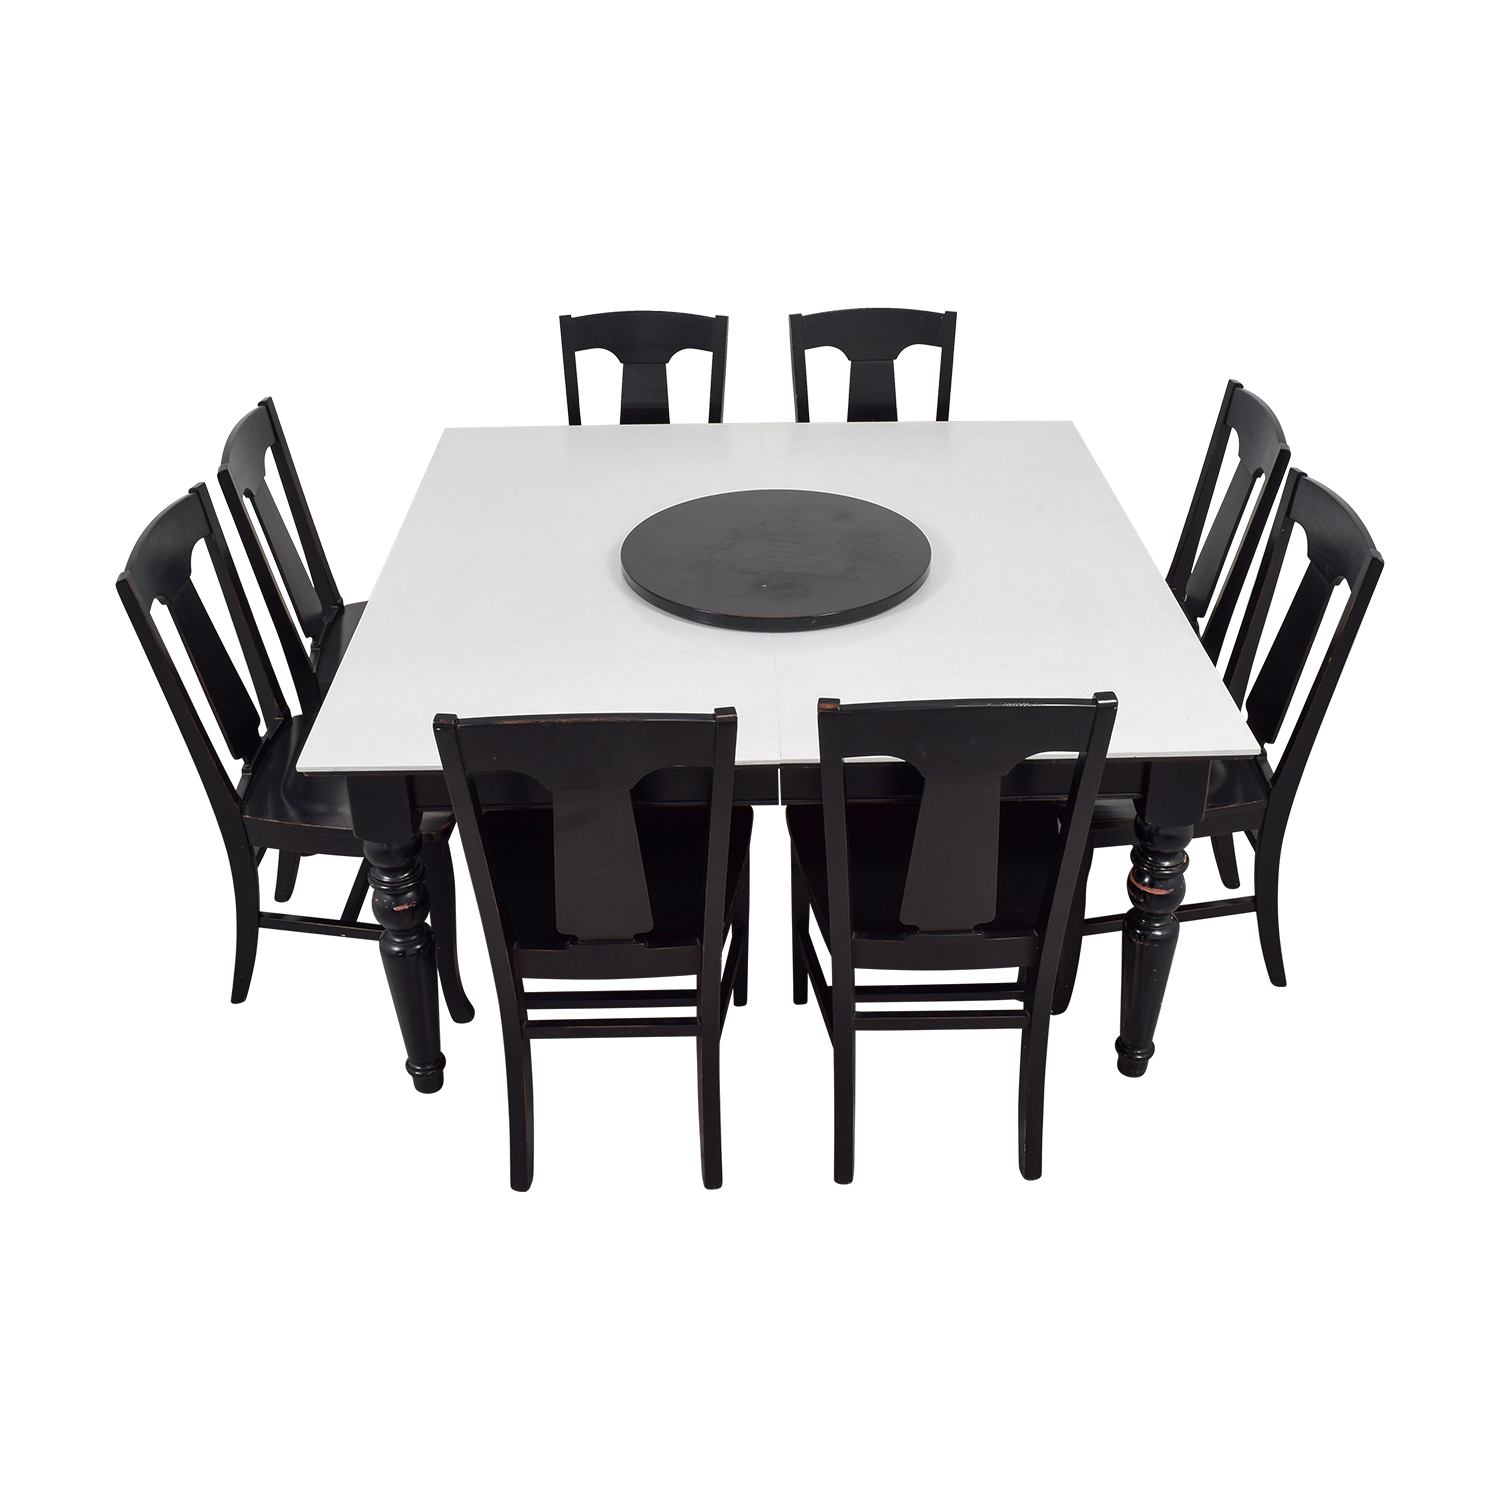 Pottery Barn Pottery Barn White and Black Extendable Dining Set with Lazy Susan second hand